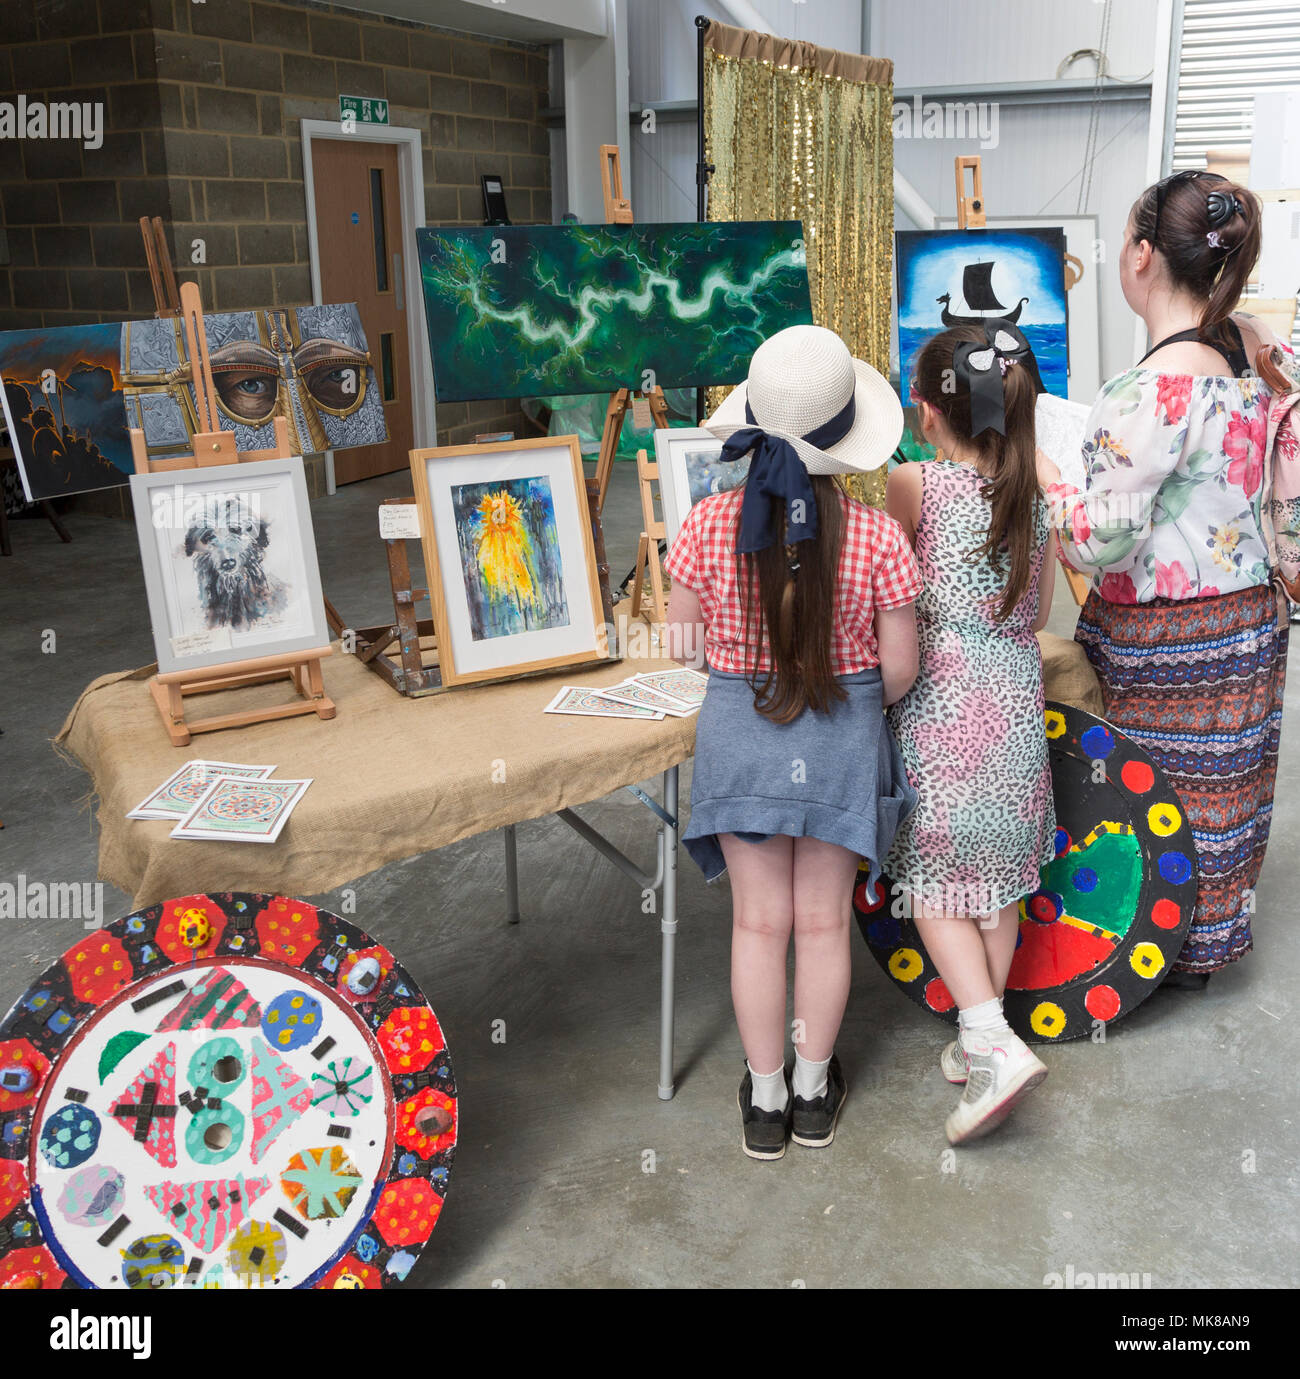 Art display stall at Sprit of Beowulf event,  Woodbridge, Suffolk, England, UK - 5th May 2018 - Stock Image